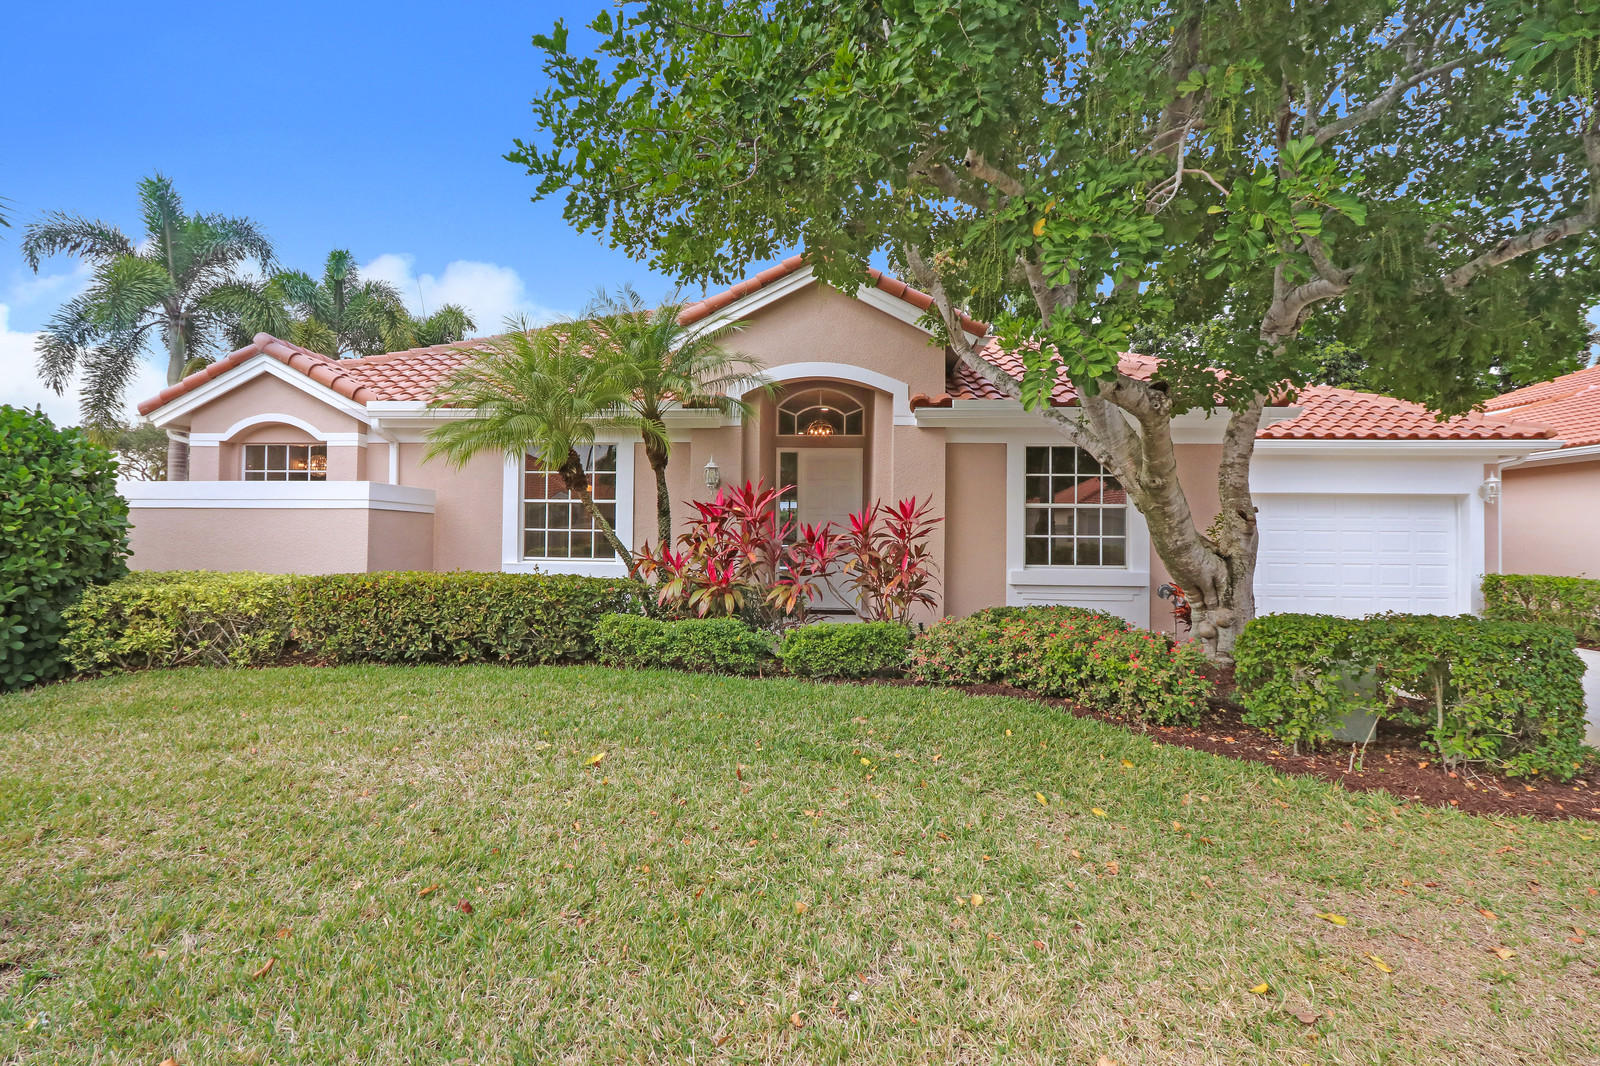 274 Eagleton Estates Boulevard, Palm Beach Gardens, Florida 33418, 3 Bedrooms Bedrooms, ,3 BathroomsBathrooms,A,Single family,Eagleton Estates,RX-10494320